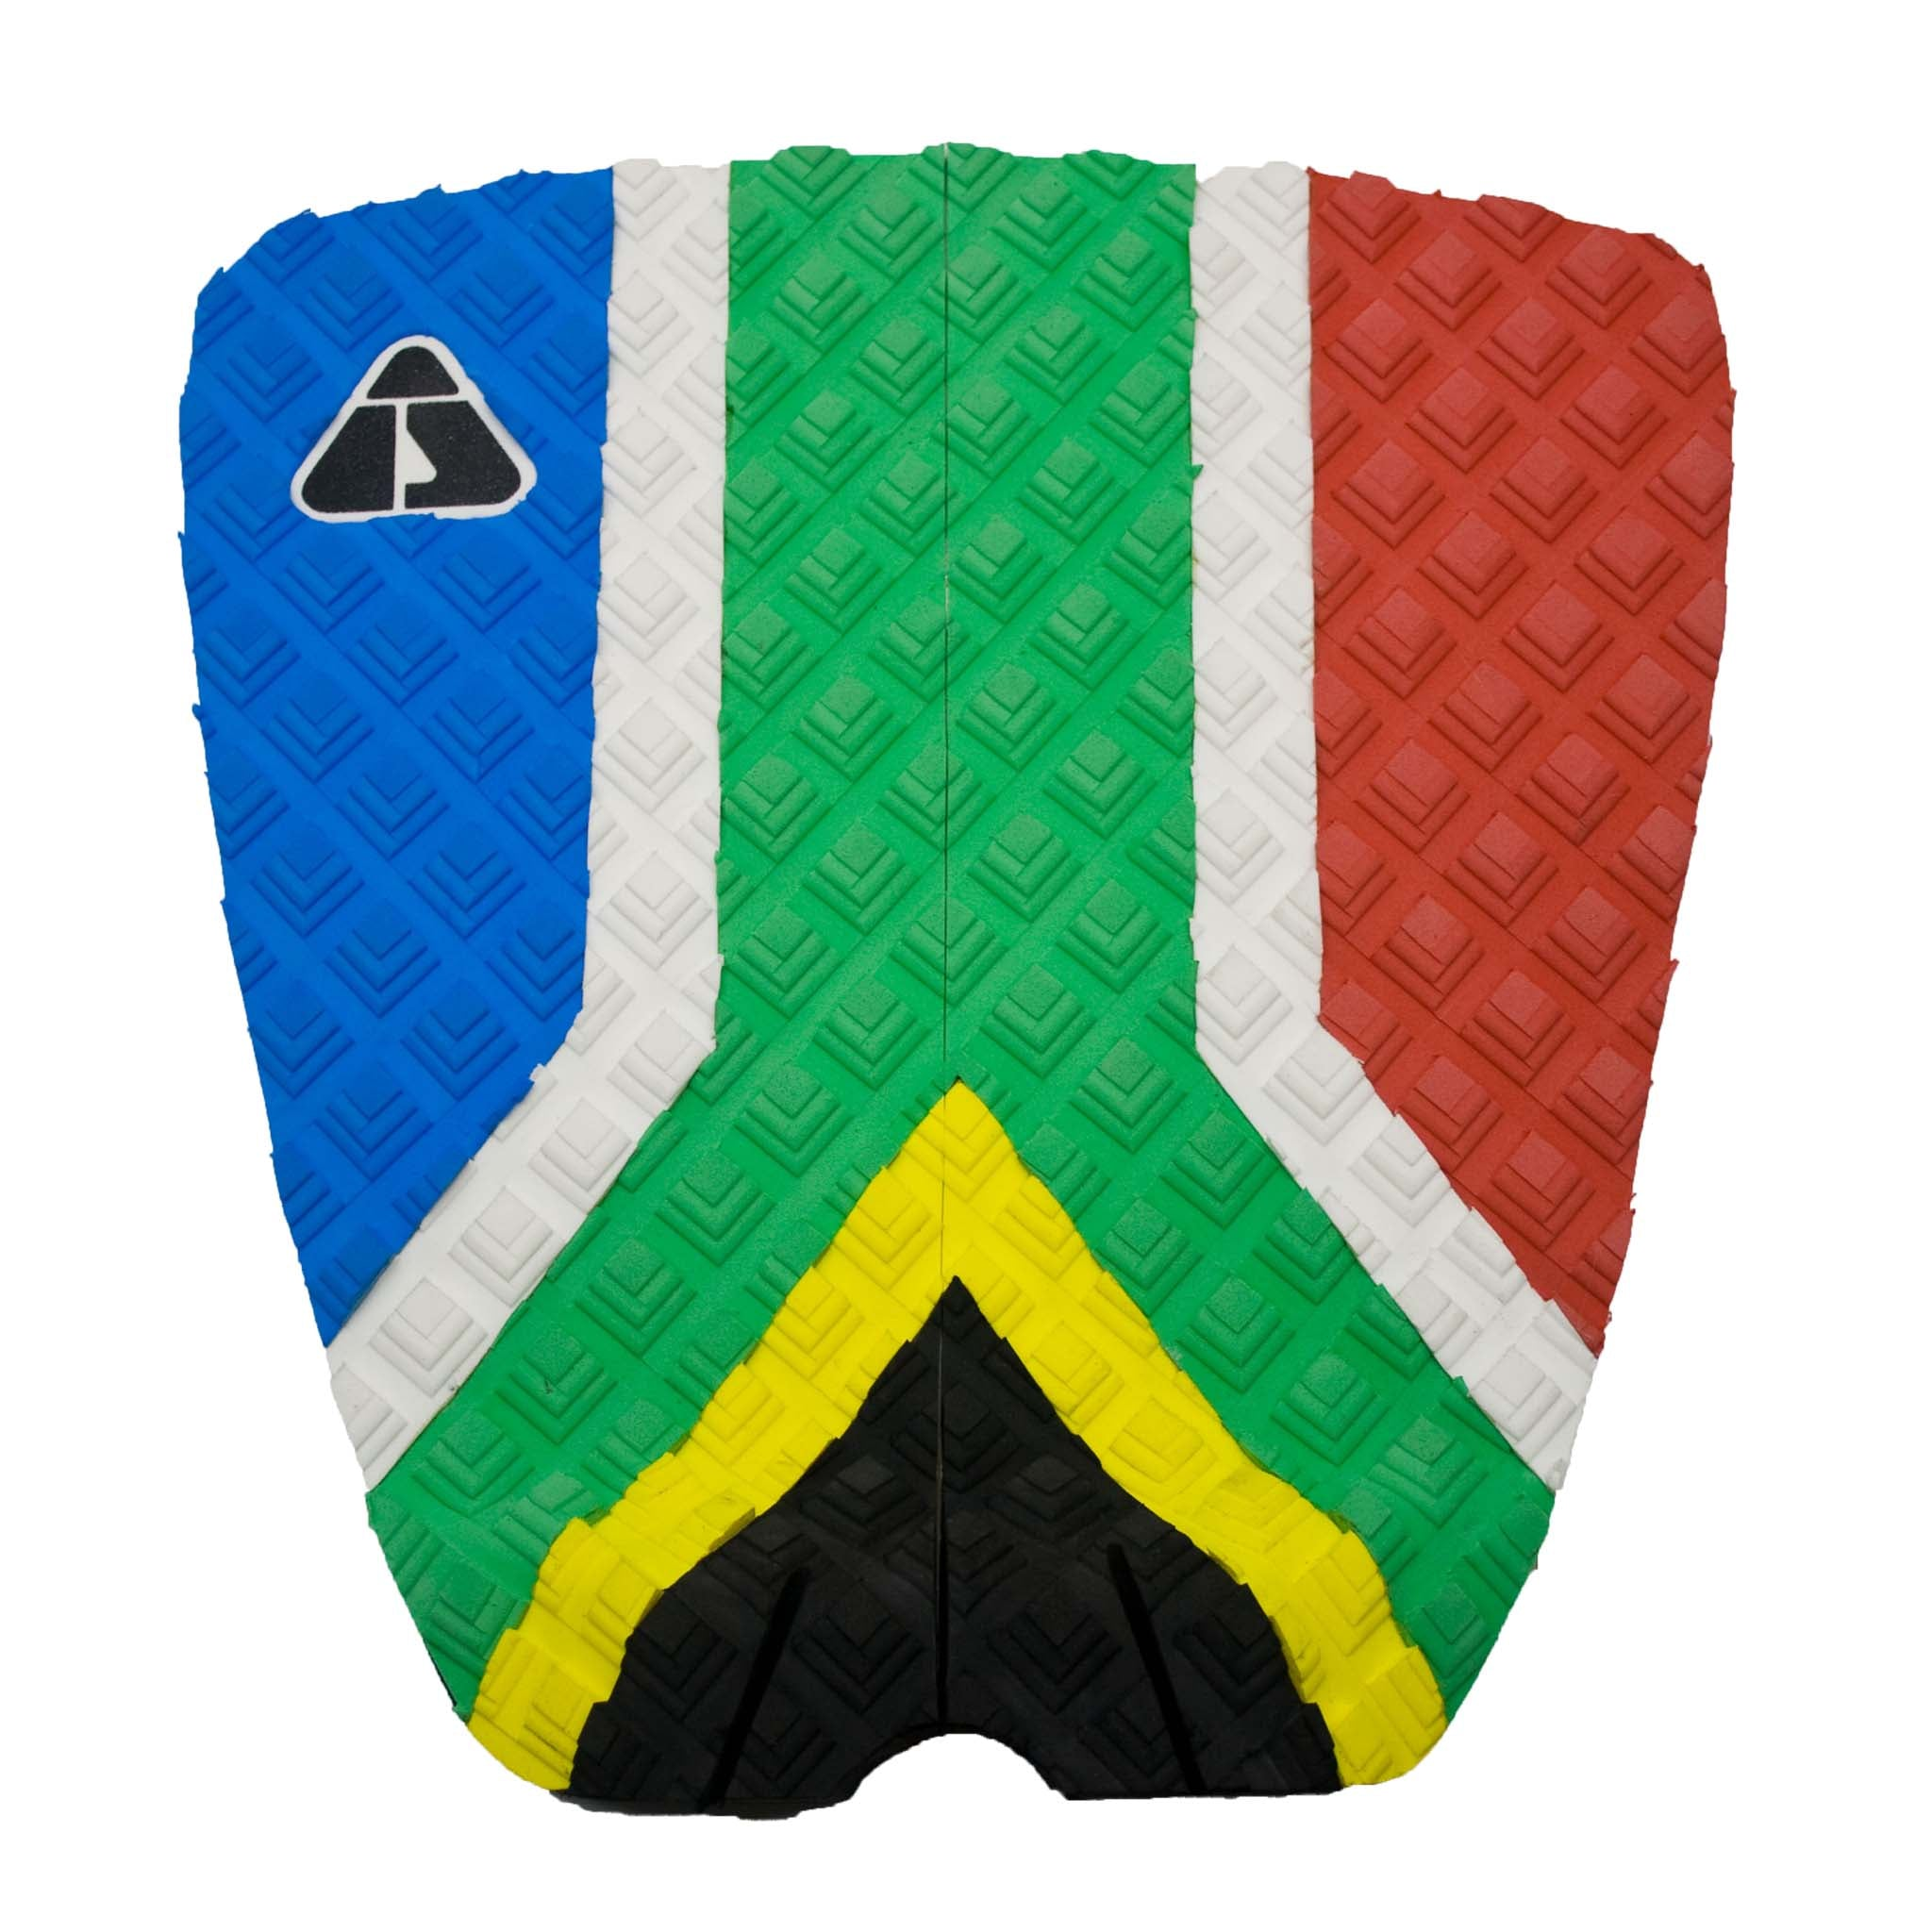 IS FLATTY SA FLAG 2 Piece Traction